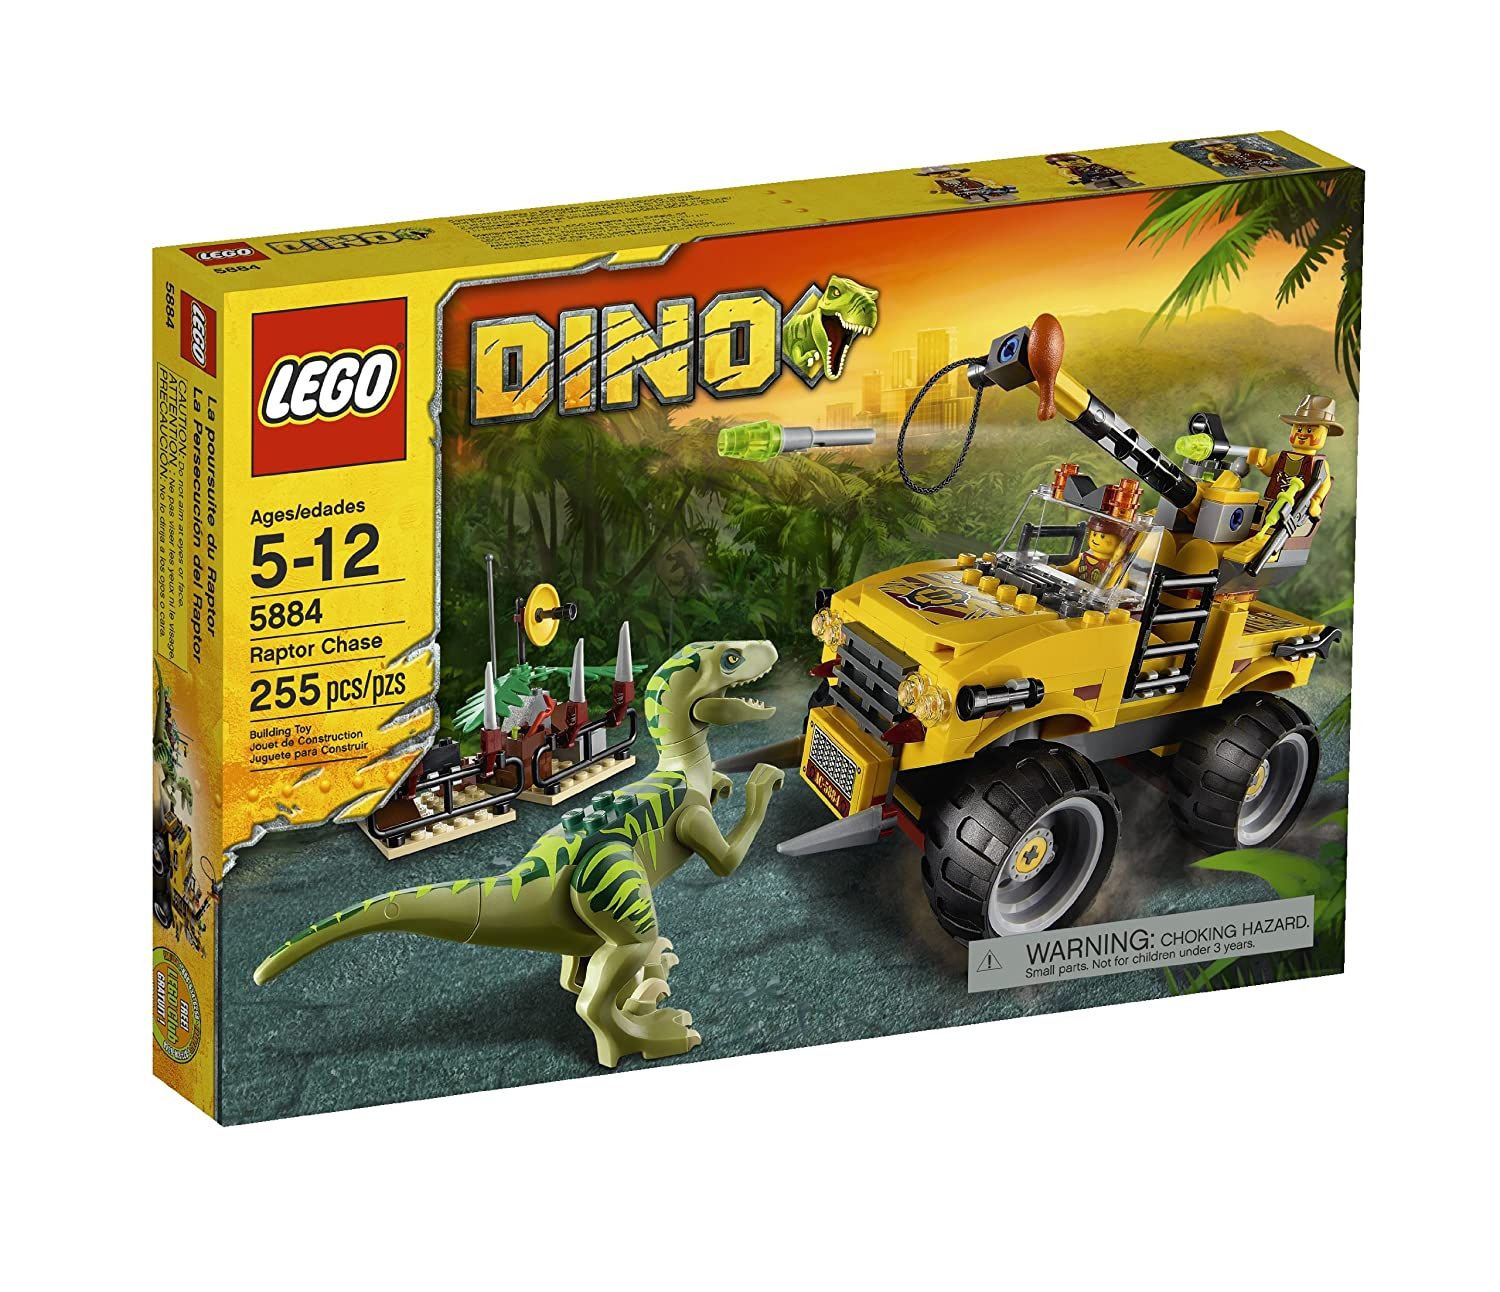 Top 8 Best Lego Dinosaurs Set Reviews in 2021 13